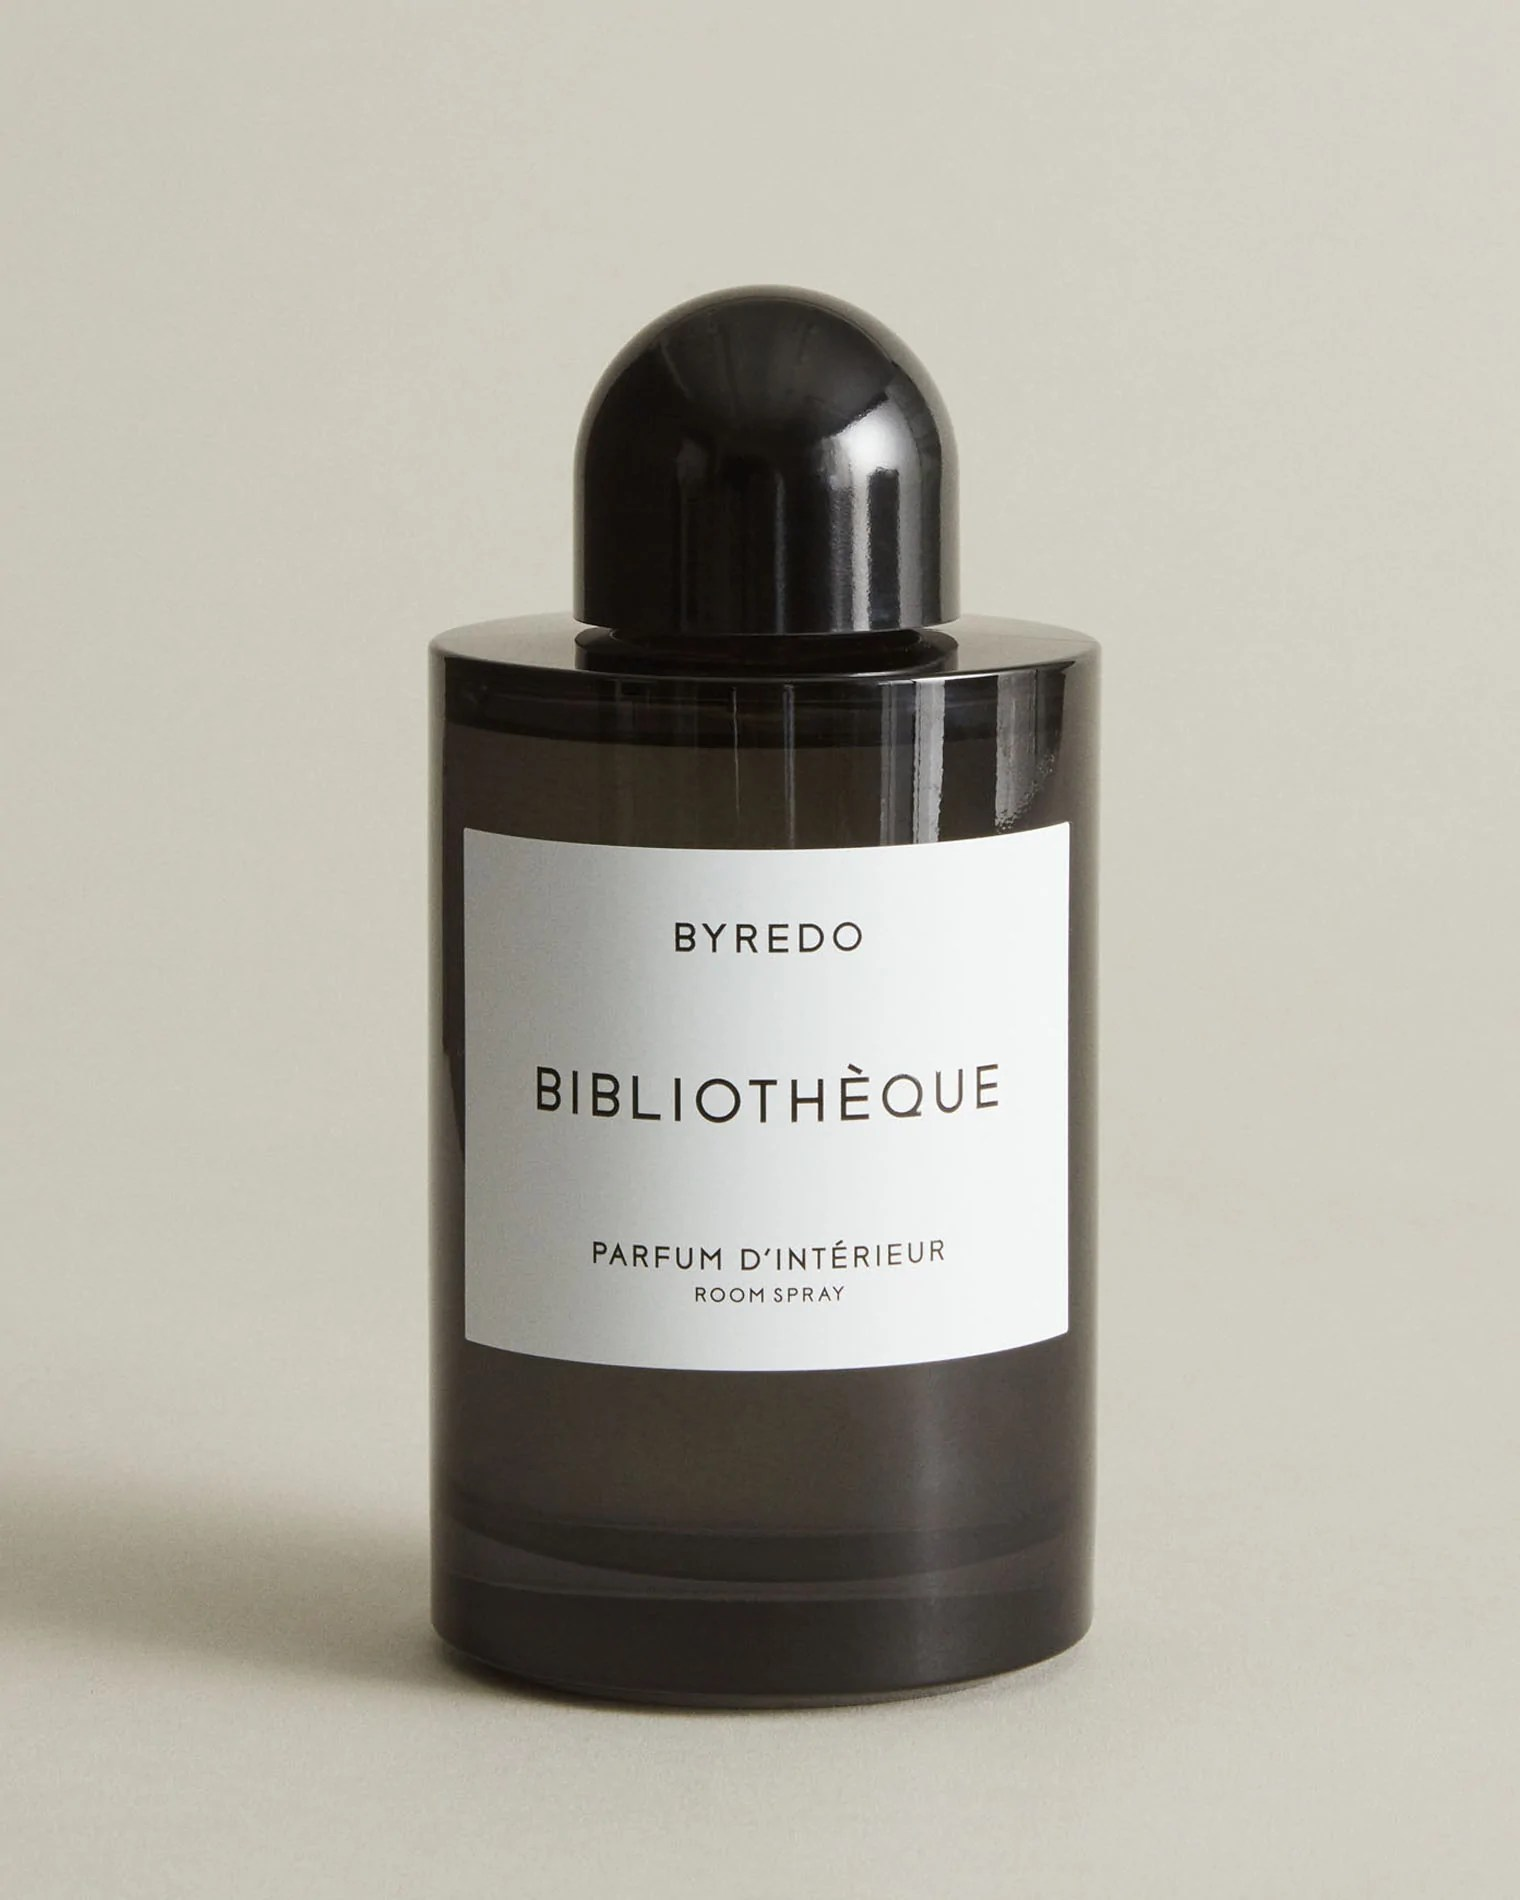 050 Interieur Bibliotheque Room Spray 250 Ml Want Apothecary Us